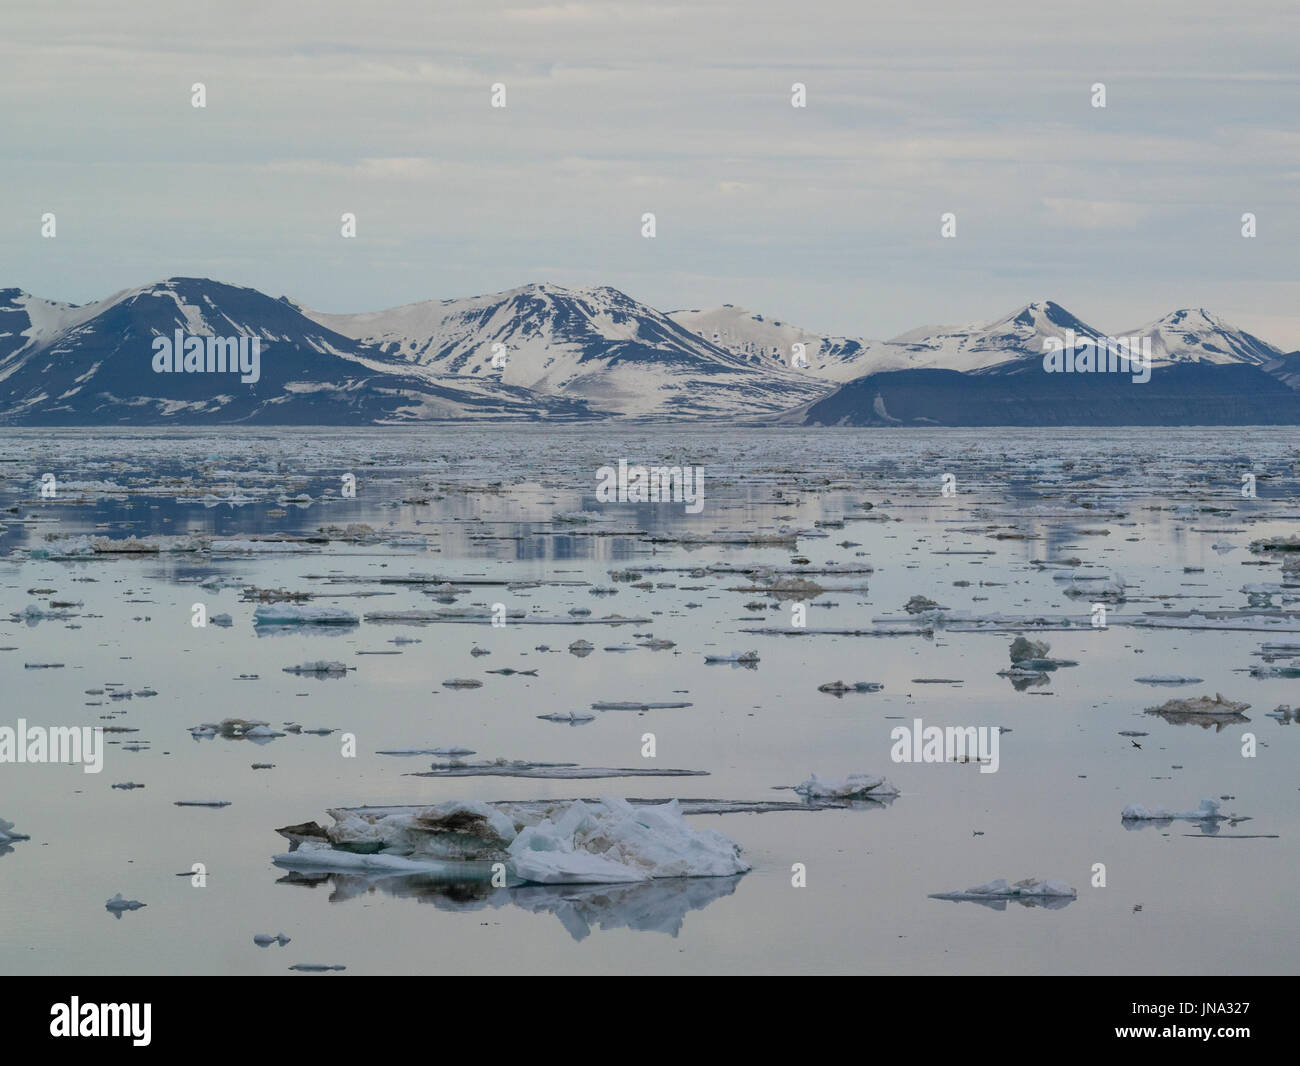 Ice floes covering waters of Storfjorden great briny bay between Spitsbergen island to the west and the islands - Stock Image